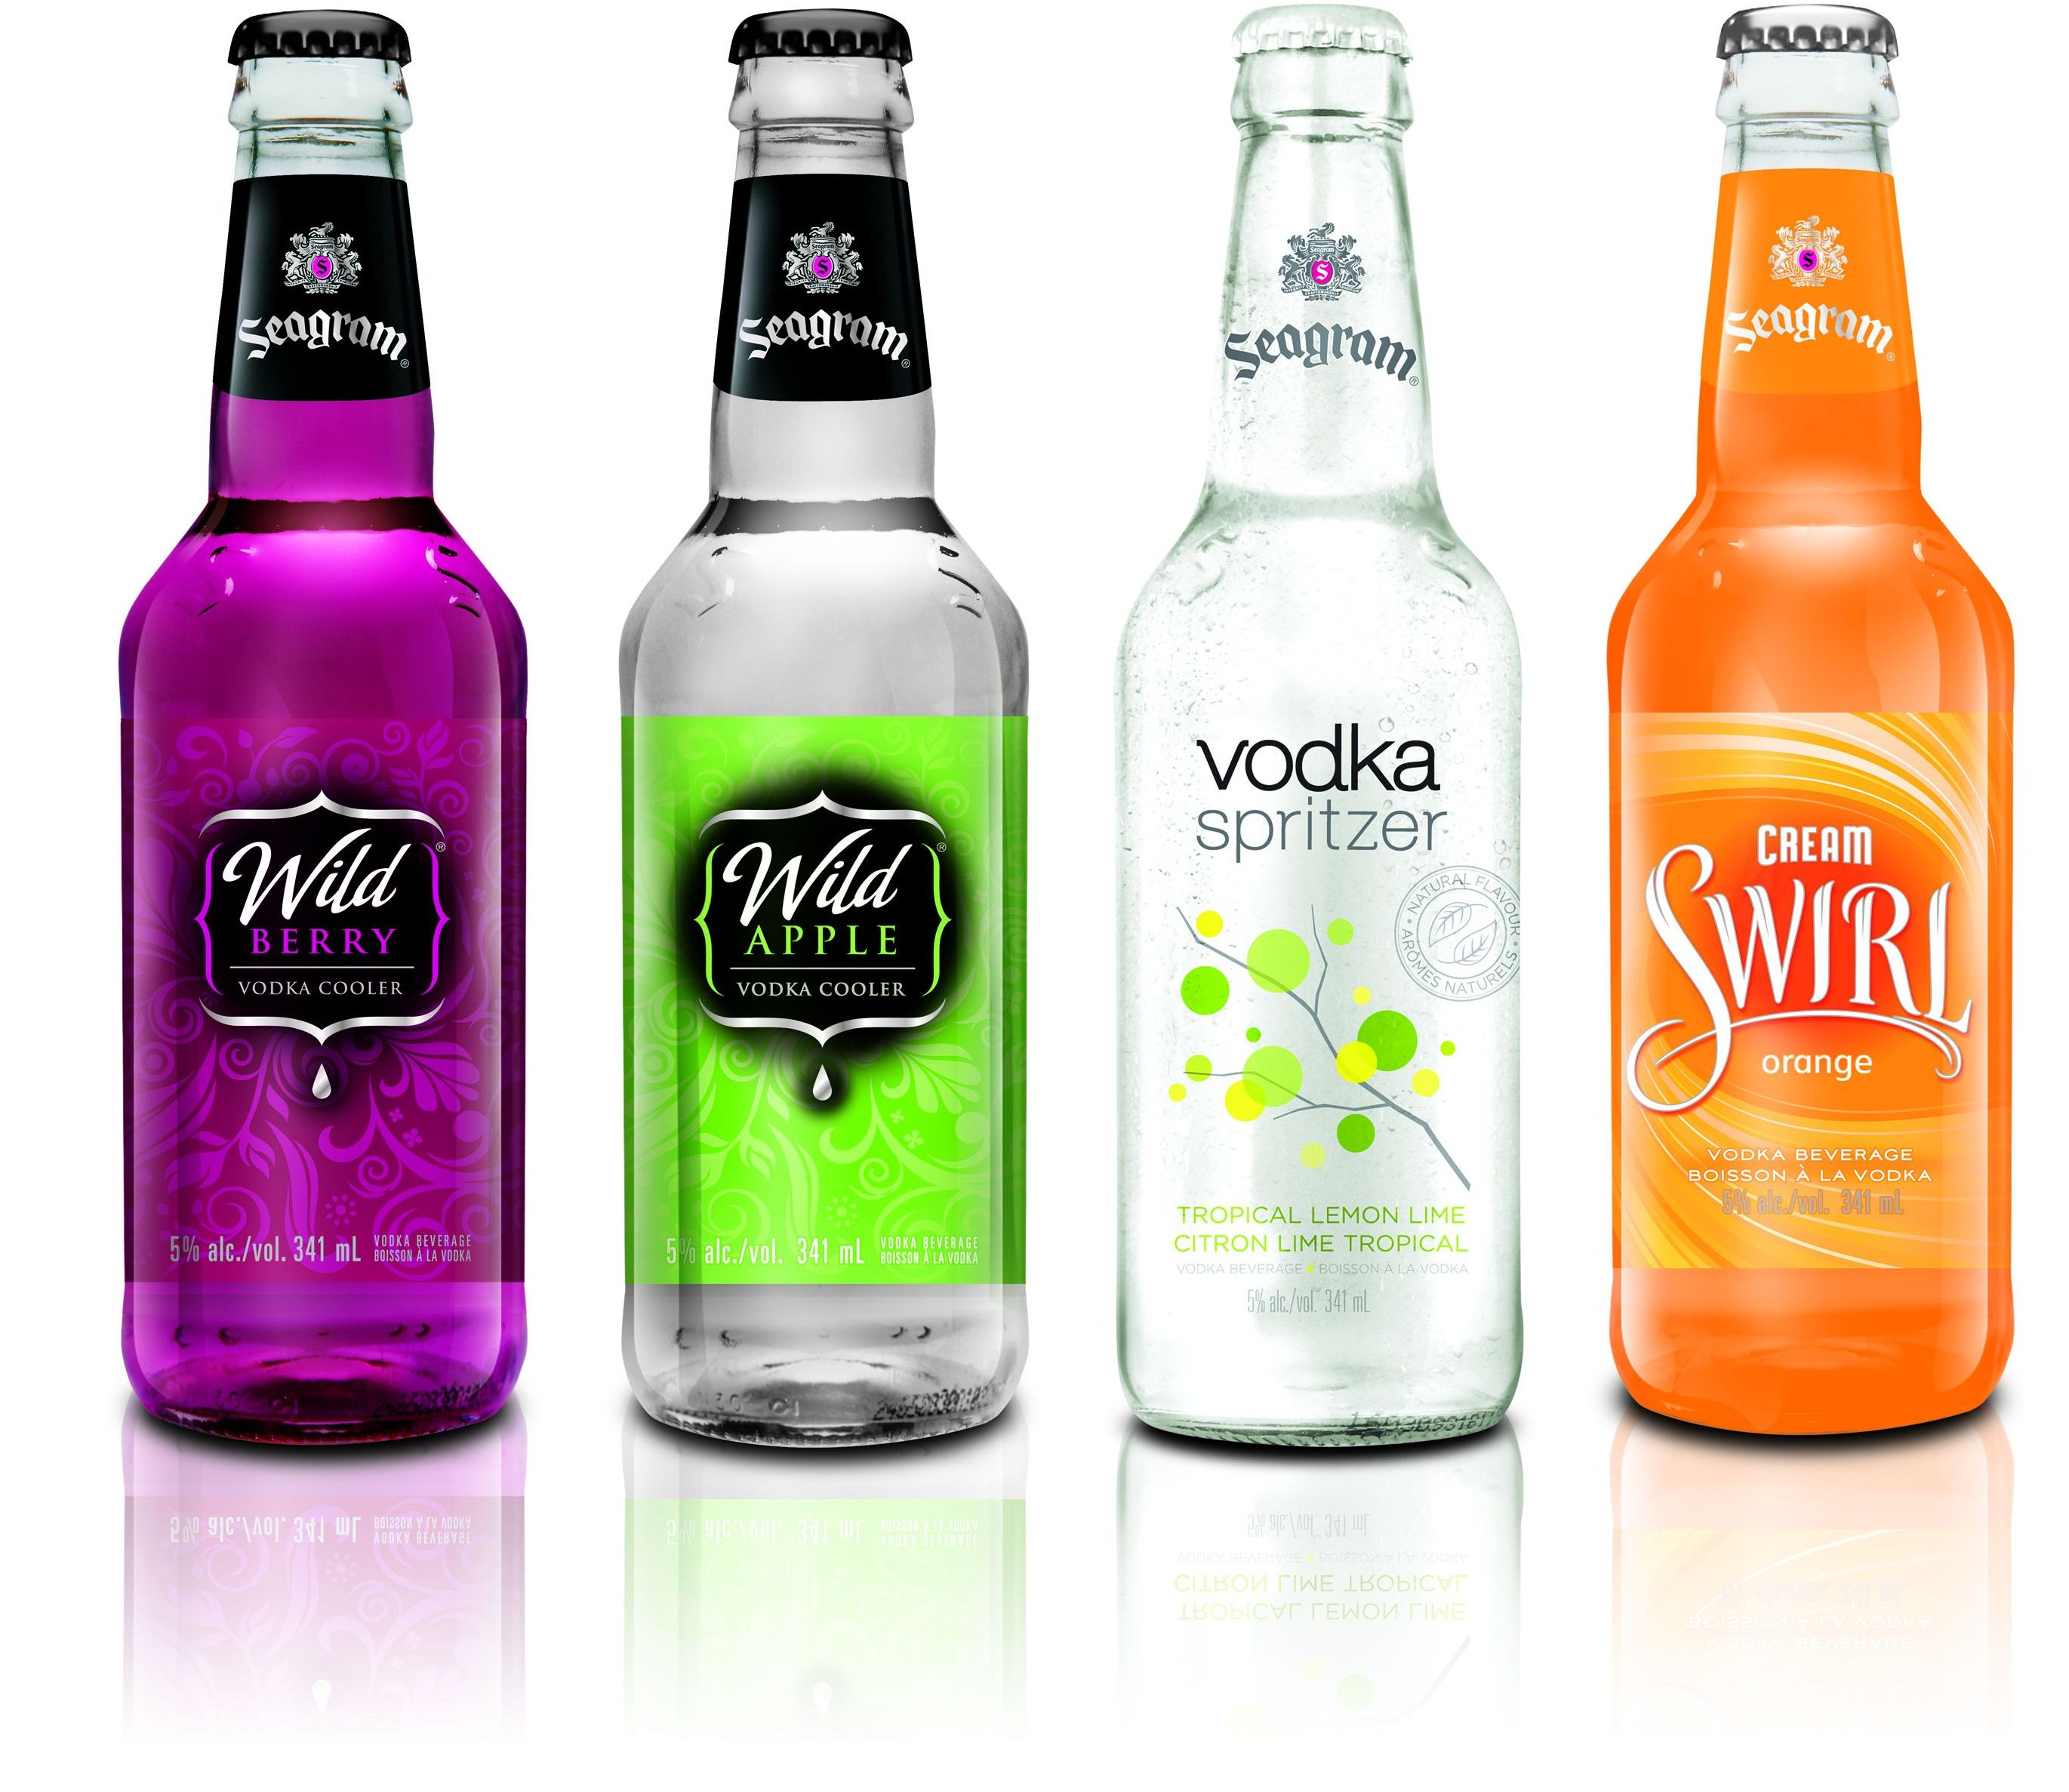 What is your favorite flavor Smirnoff wine coolers? - Yahoo! Answers